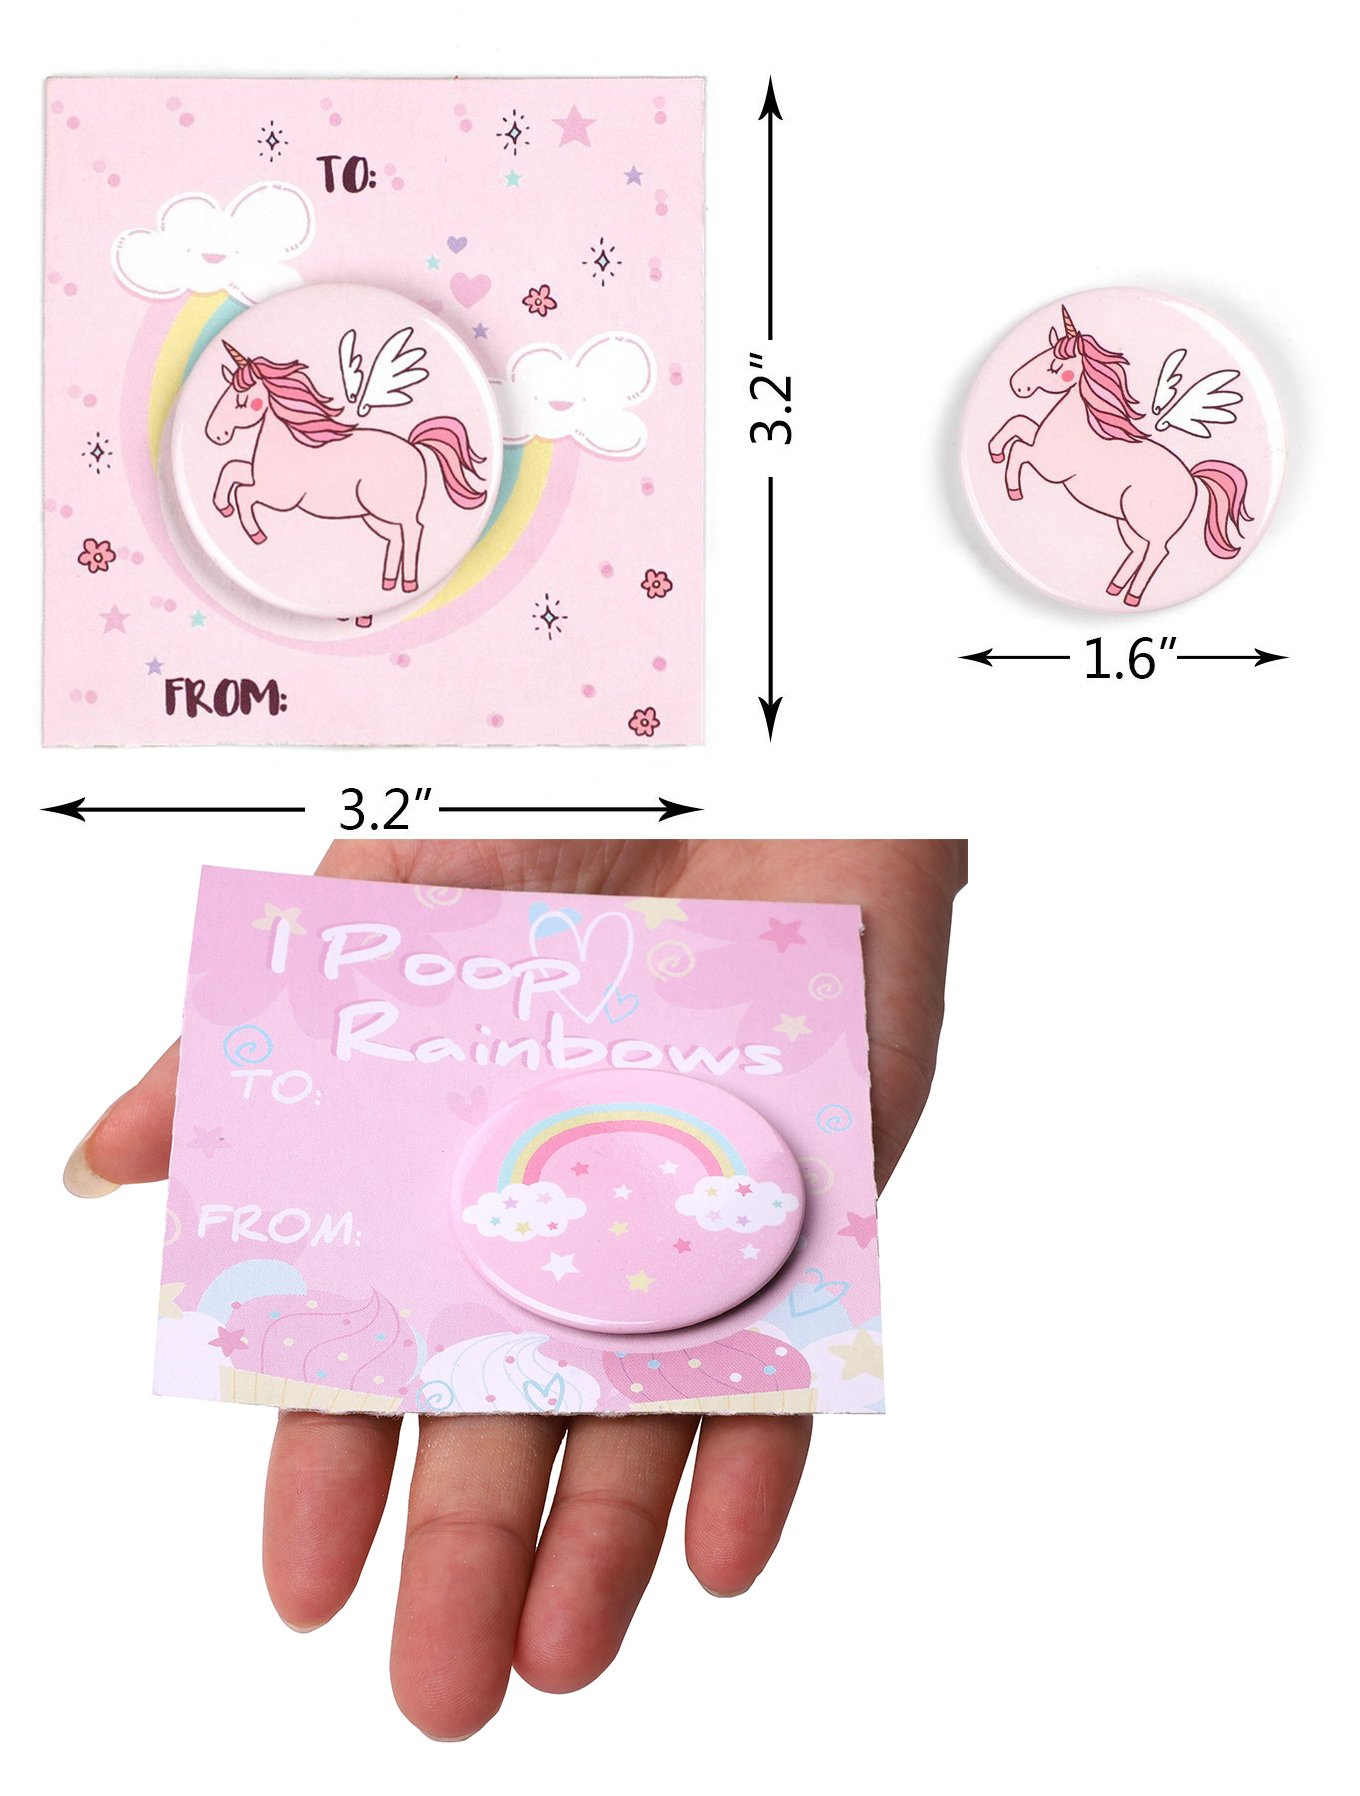 Geefuun Unicorn Pins Valentine's Day/Birthday Party Favors Decorations Girl Gift Badges Magical Rainbow Cards Supplies 5